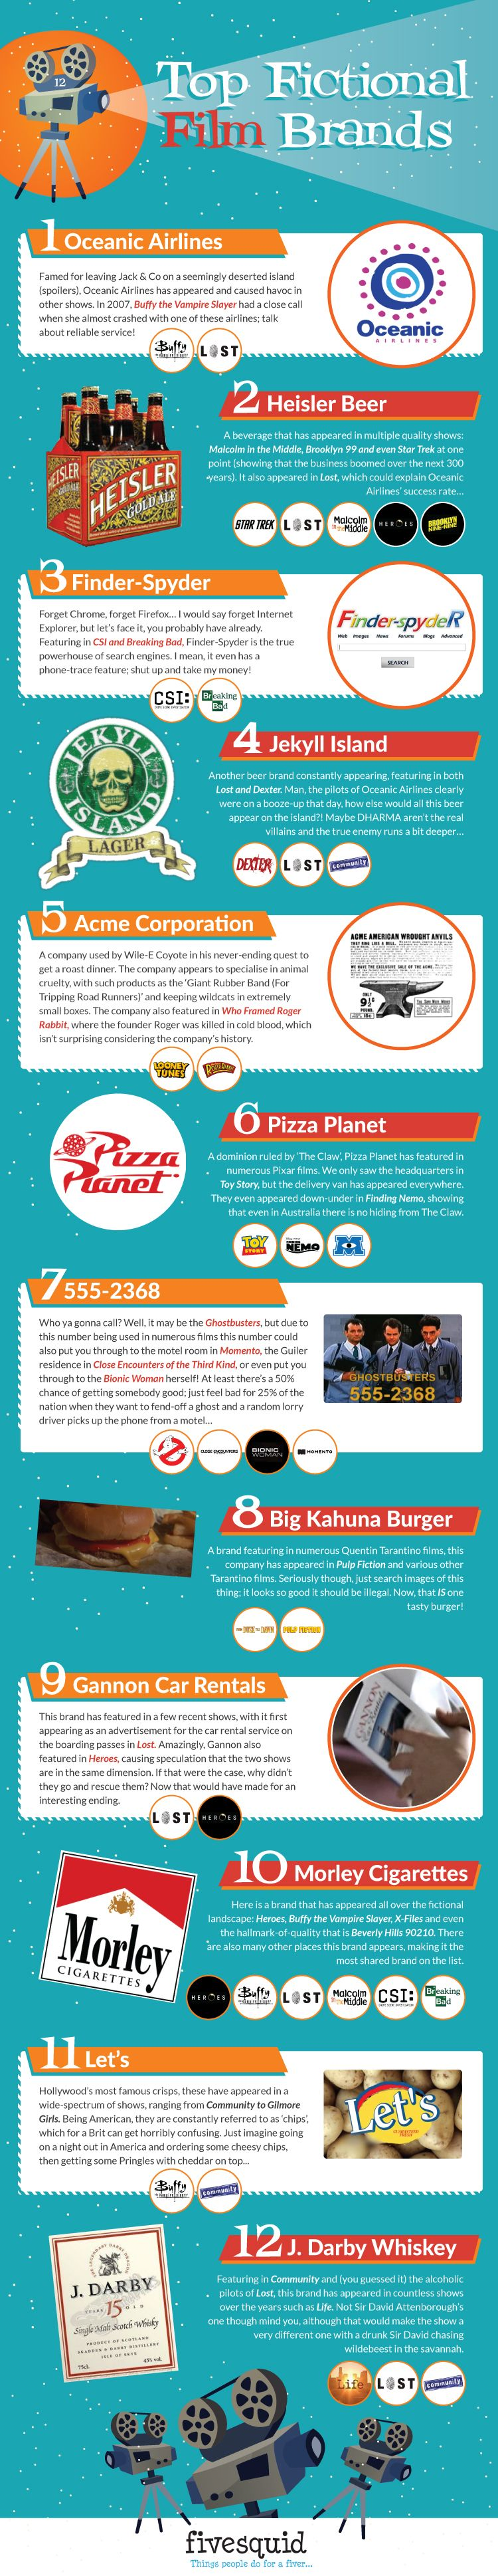 Top Fictional Brands in Film